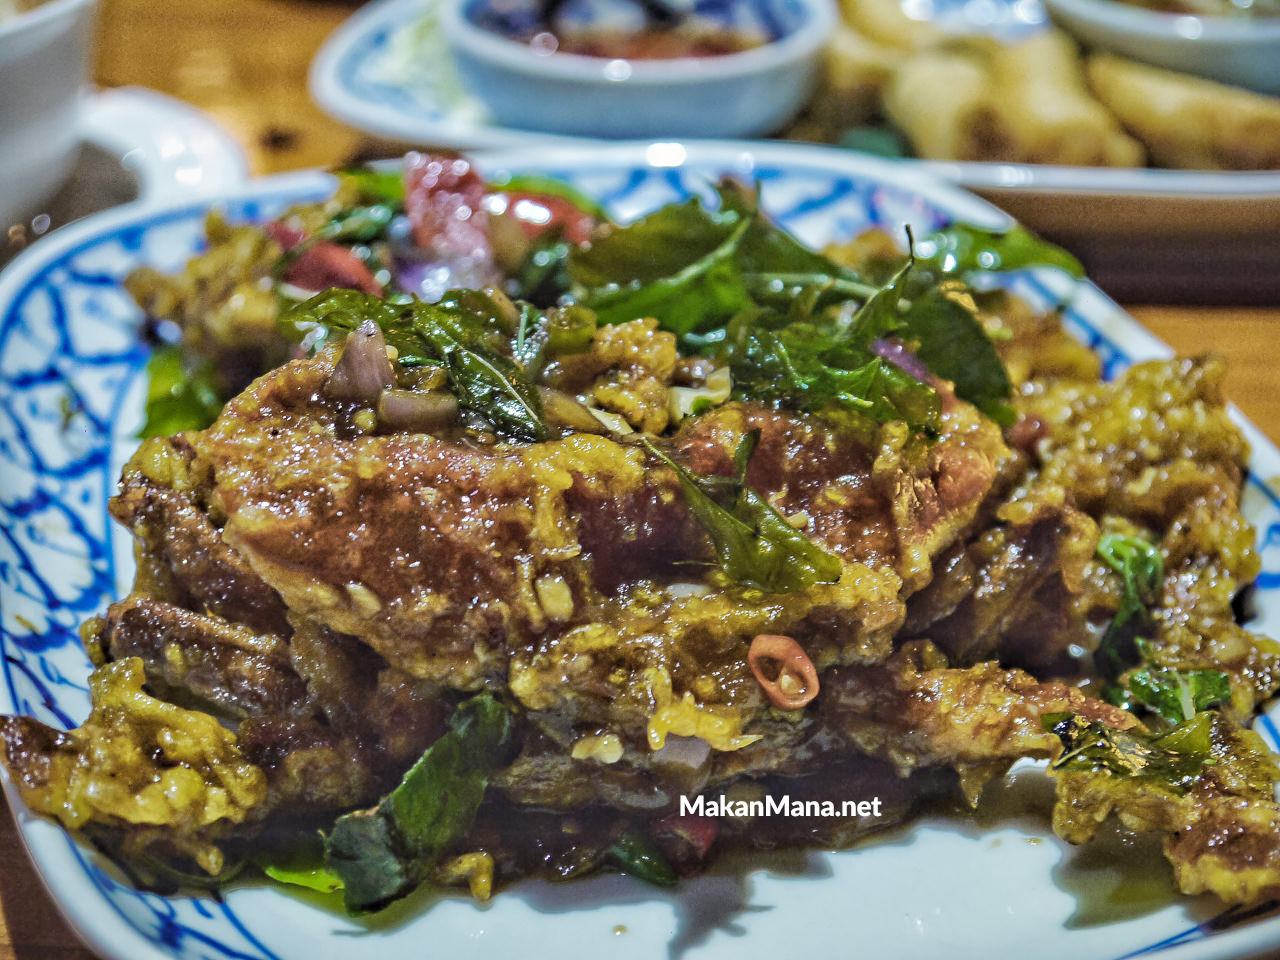 Jittlada Soft Shell Crab